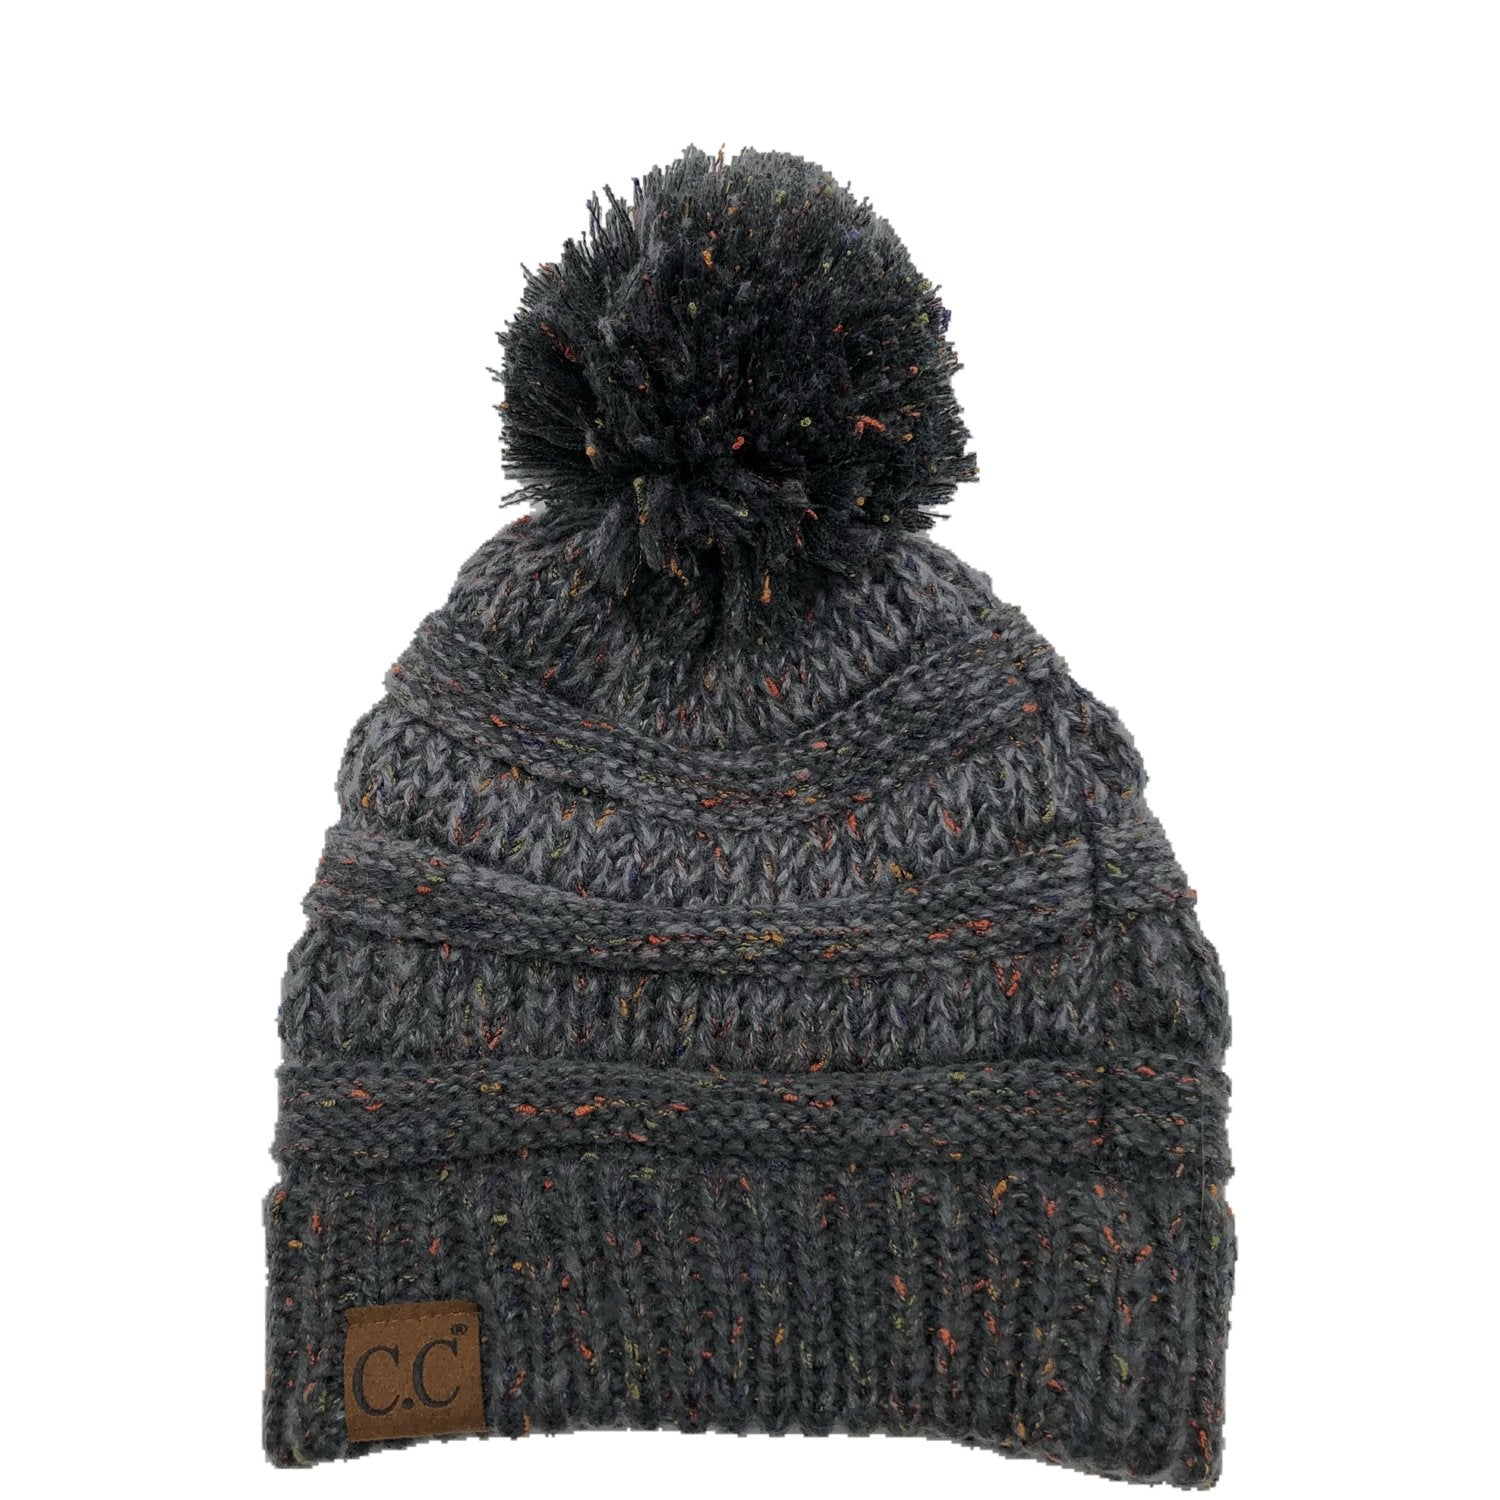 YJ-817 Speckled Pom Beanie - Dark Mel Grey